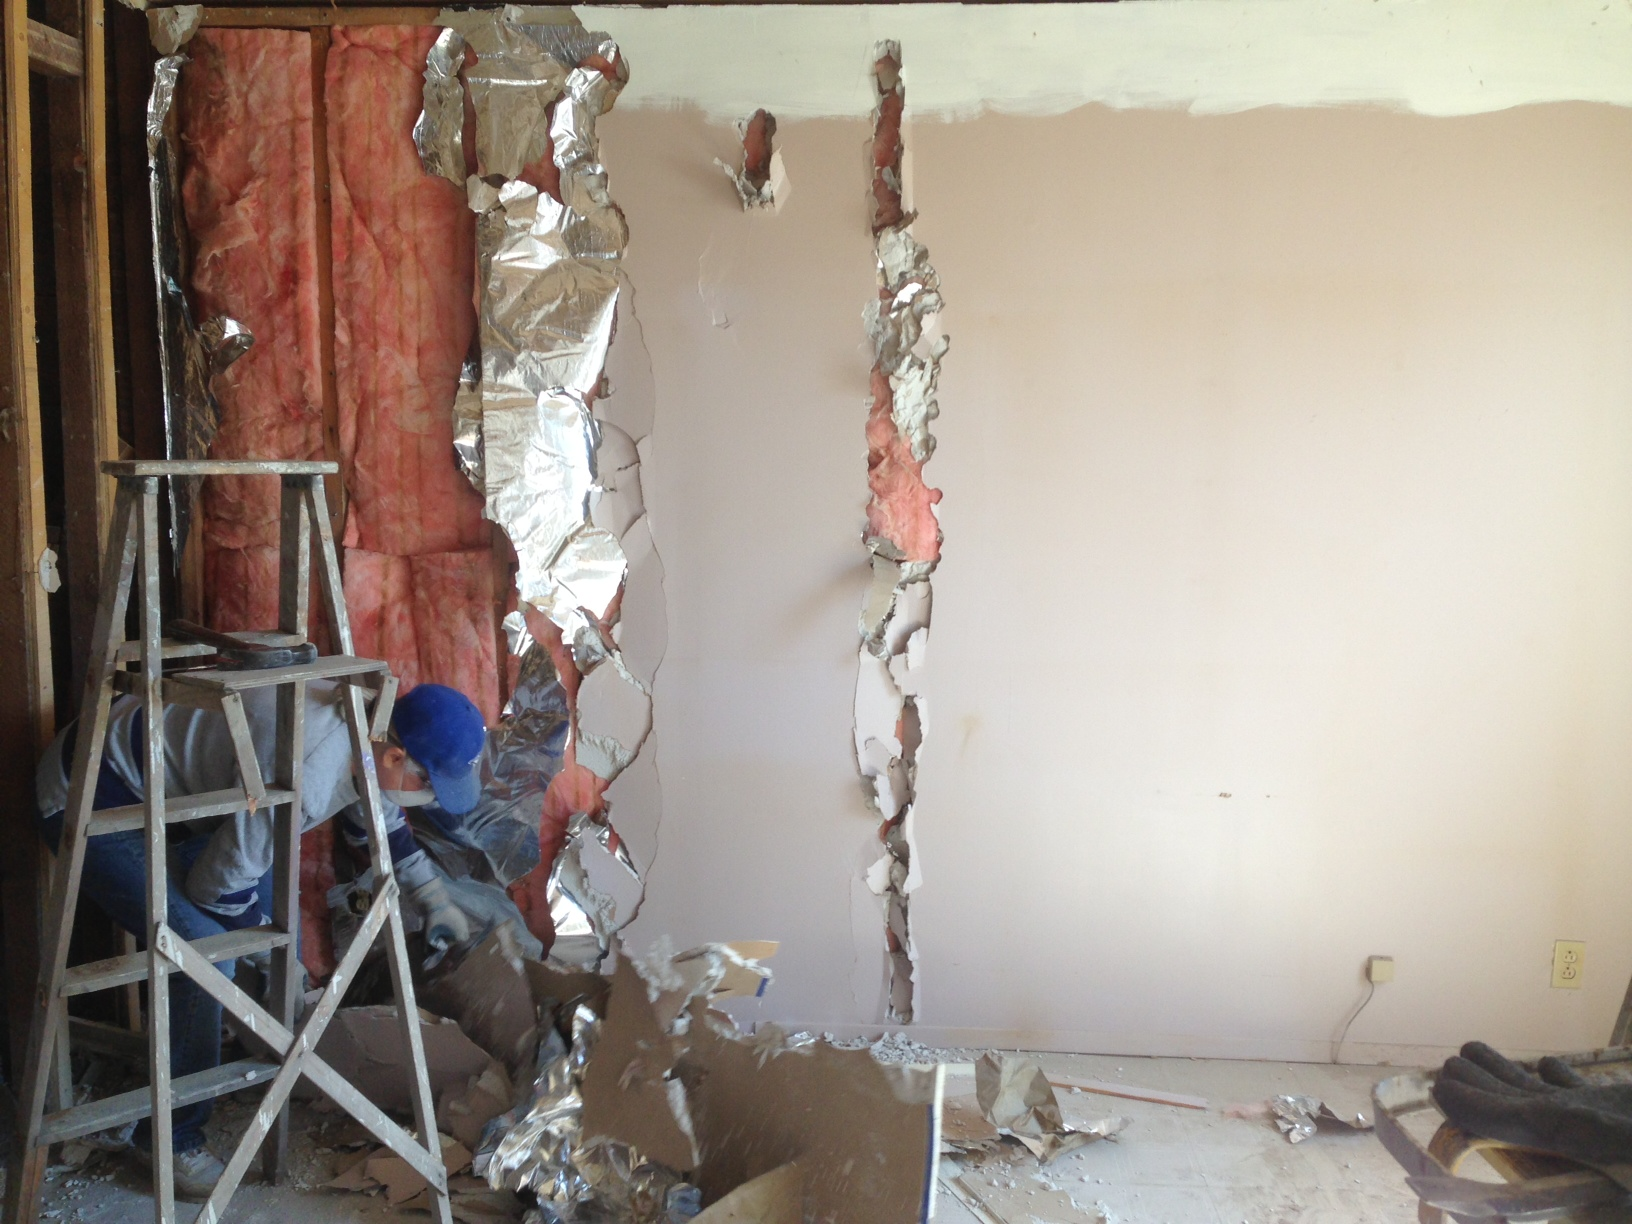 Taking down drywall in first room